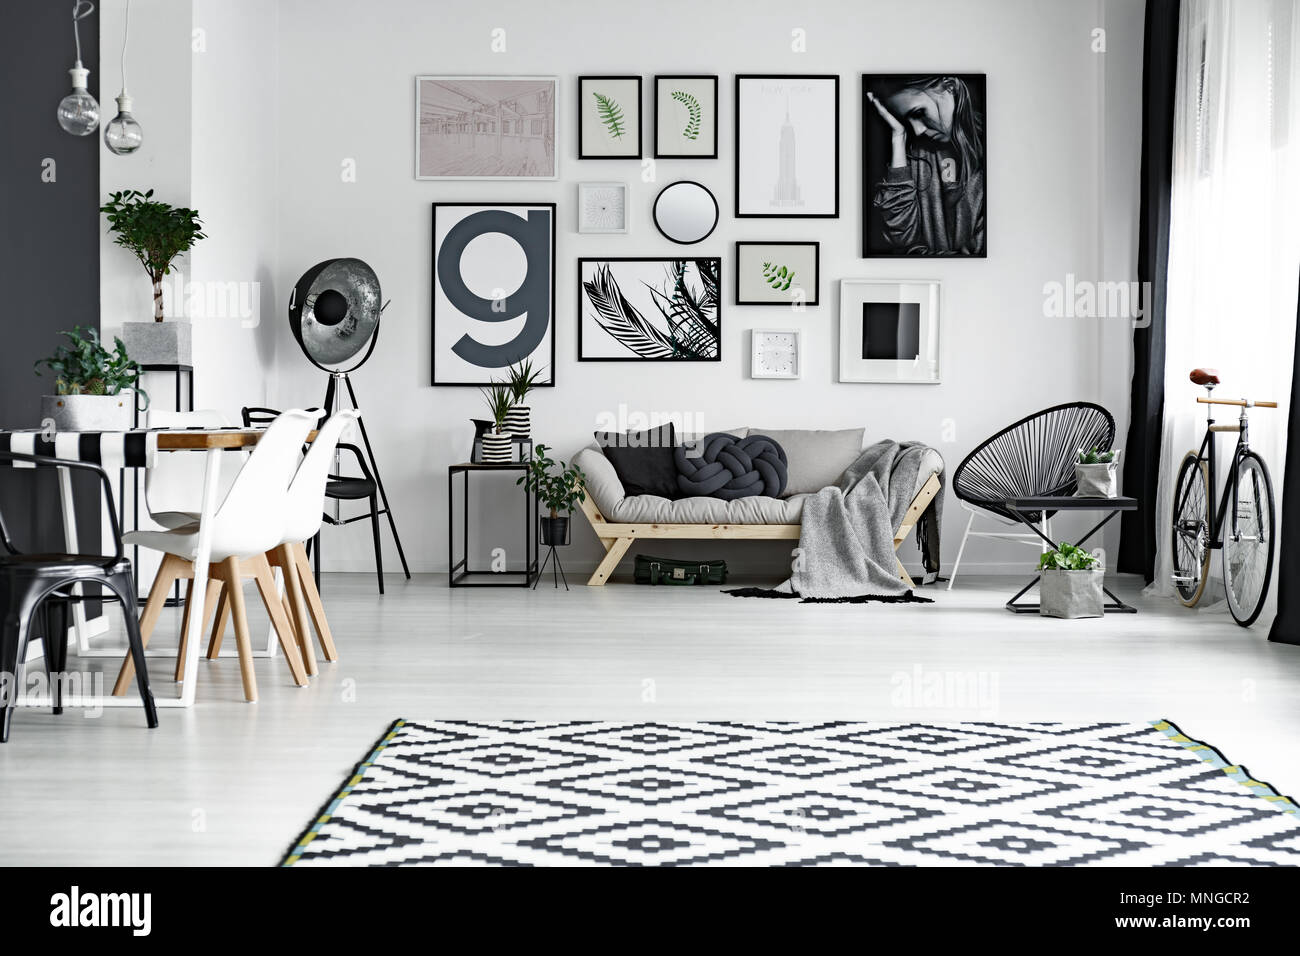 Black and white living room with posters on the wall Stock Photo ...